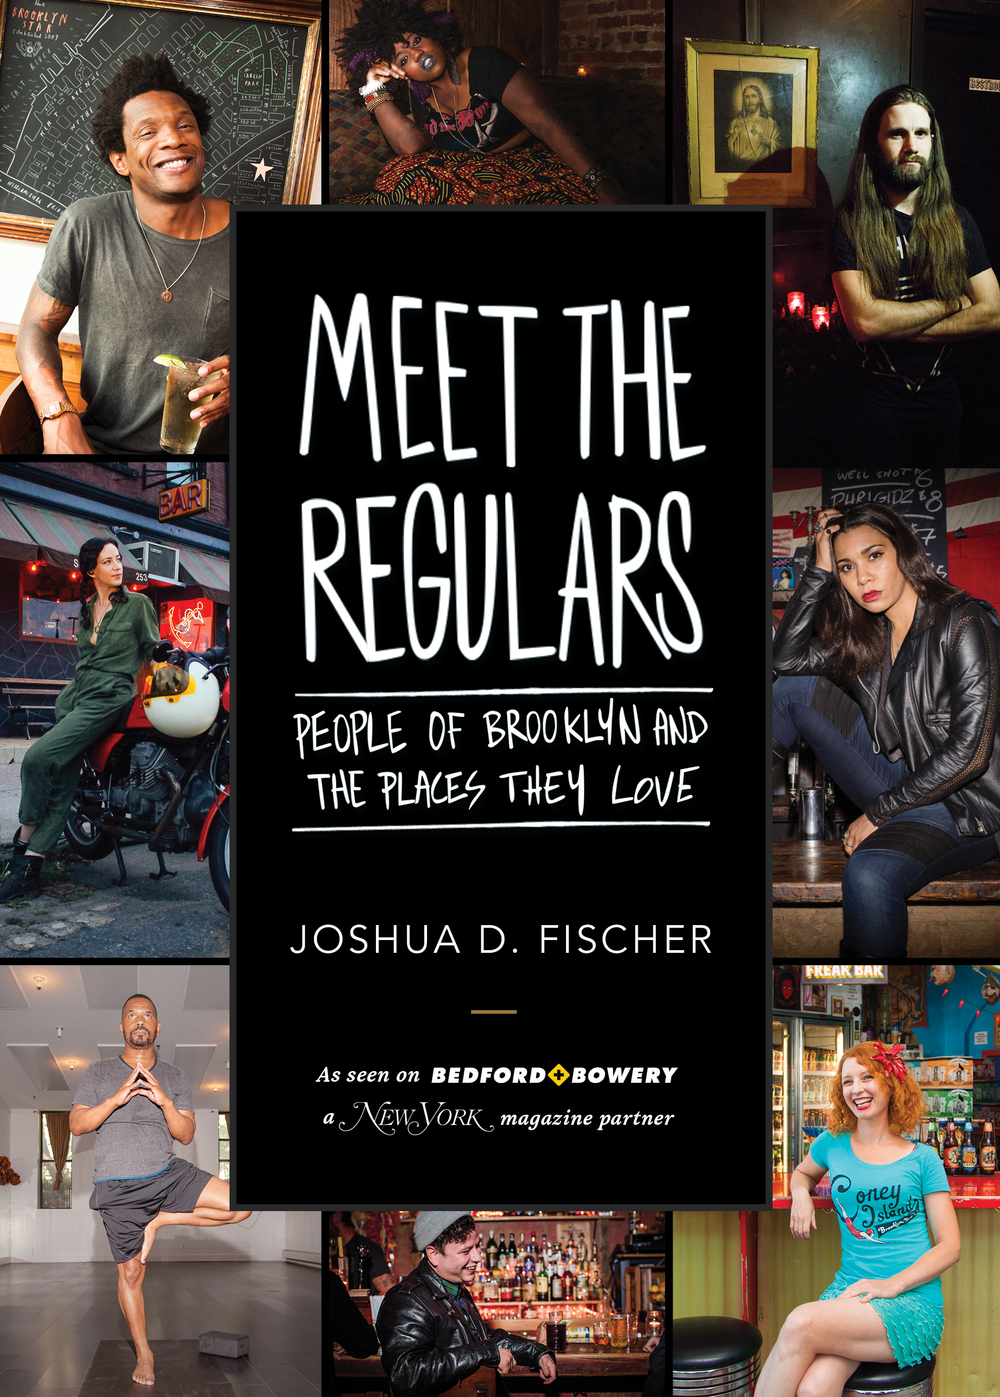 Meet the Regulars by Joshua D. Fischer